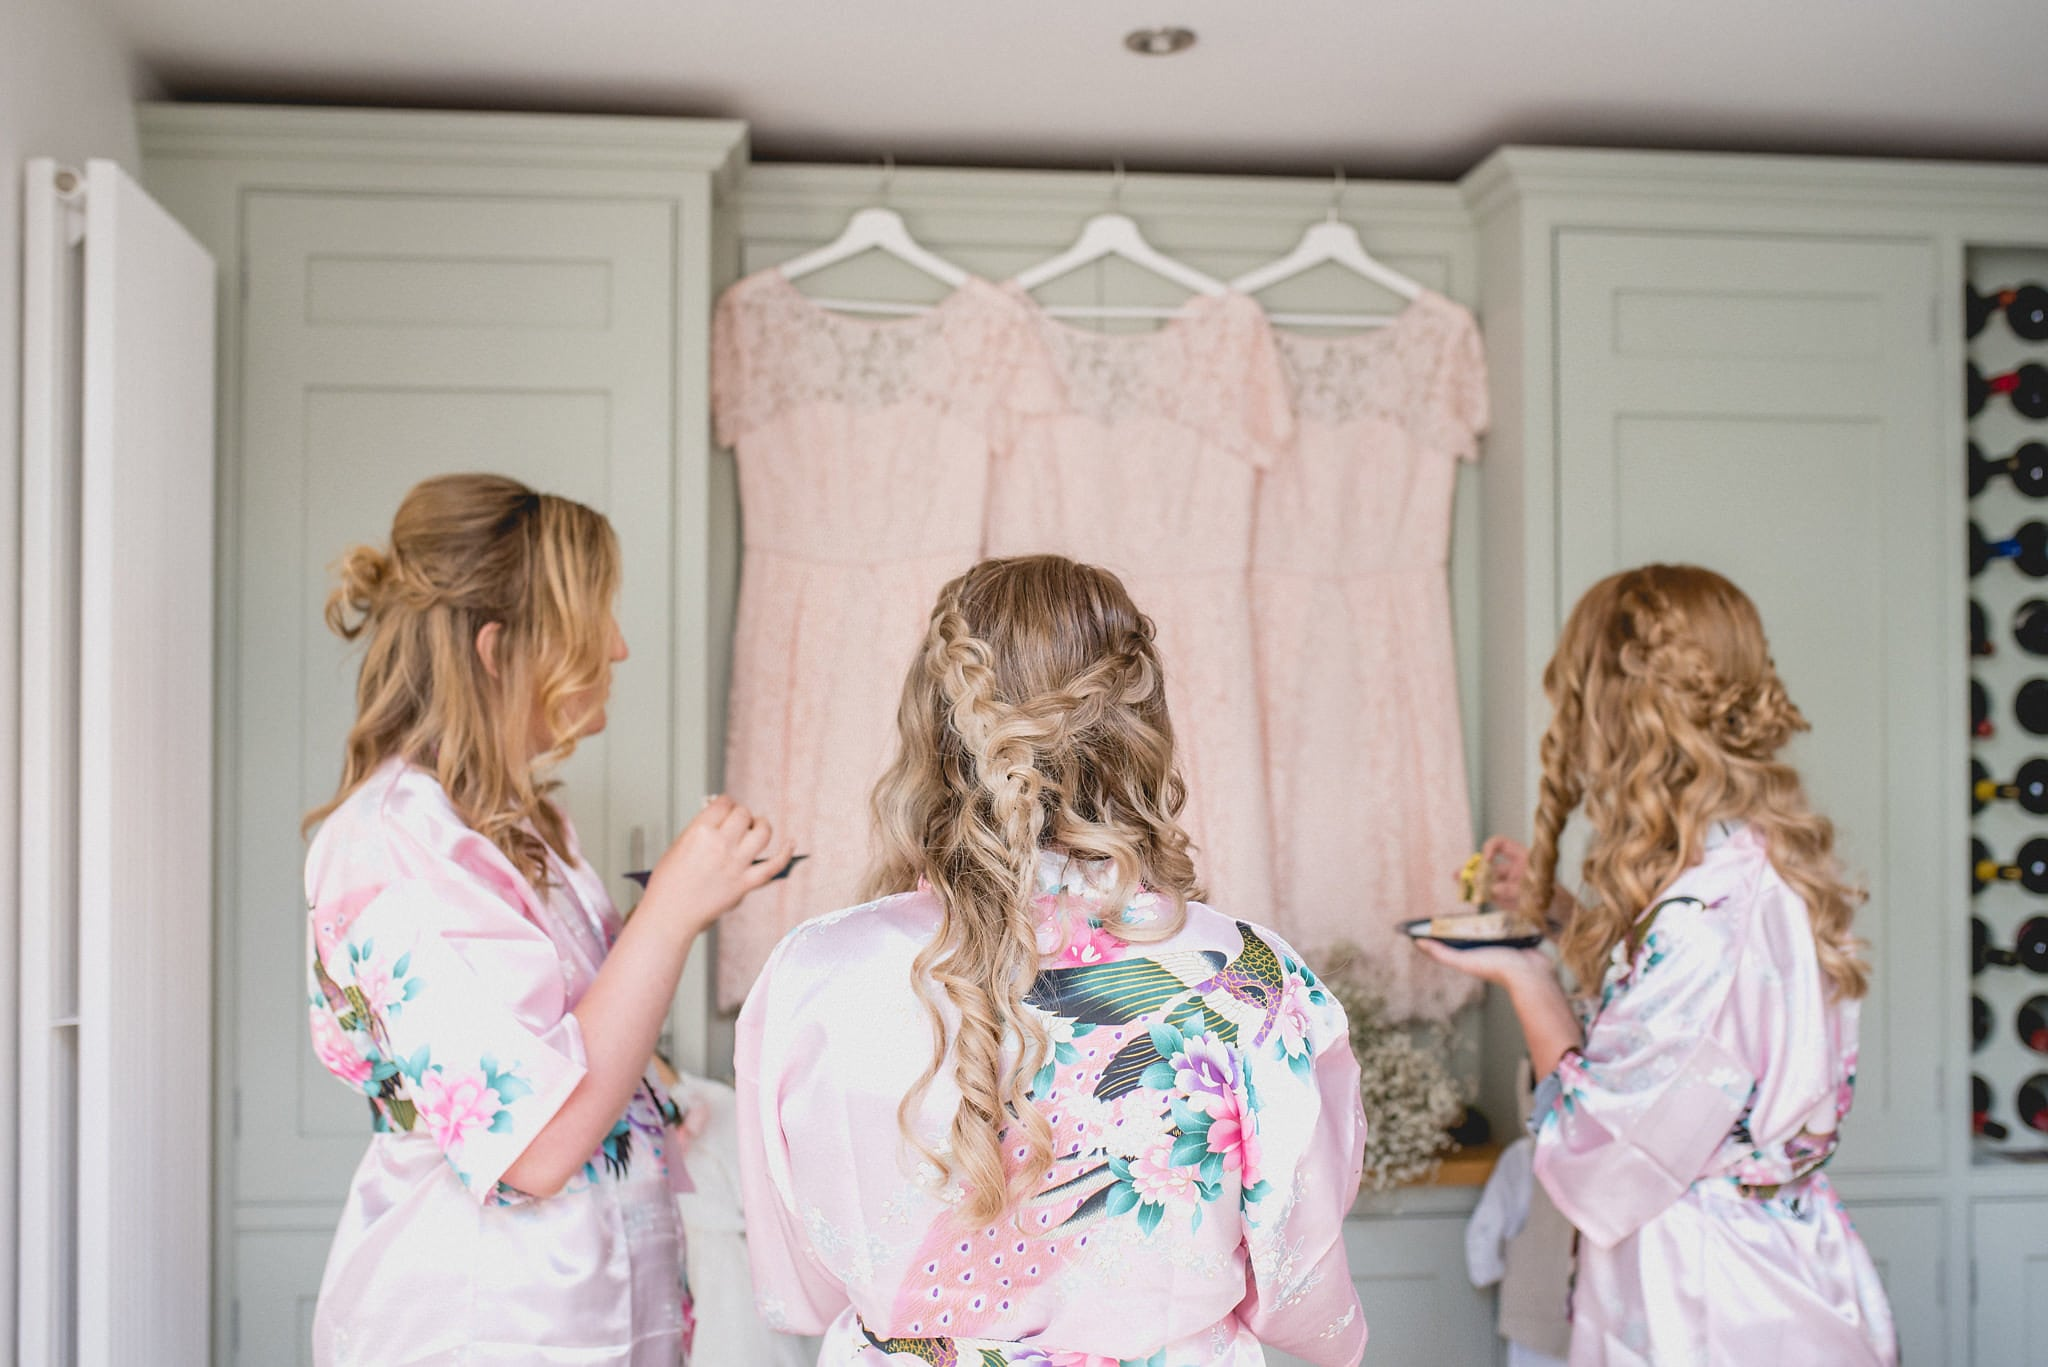 Bridesmaids in kimonos eat breakfast together